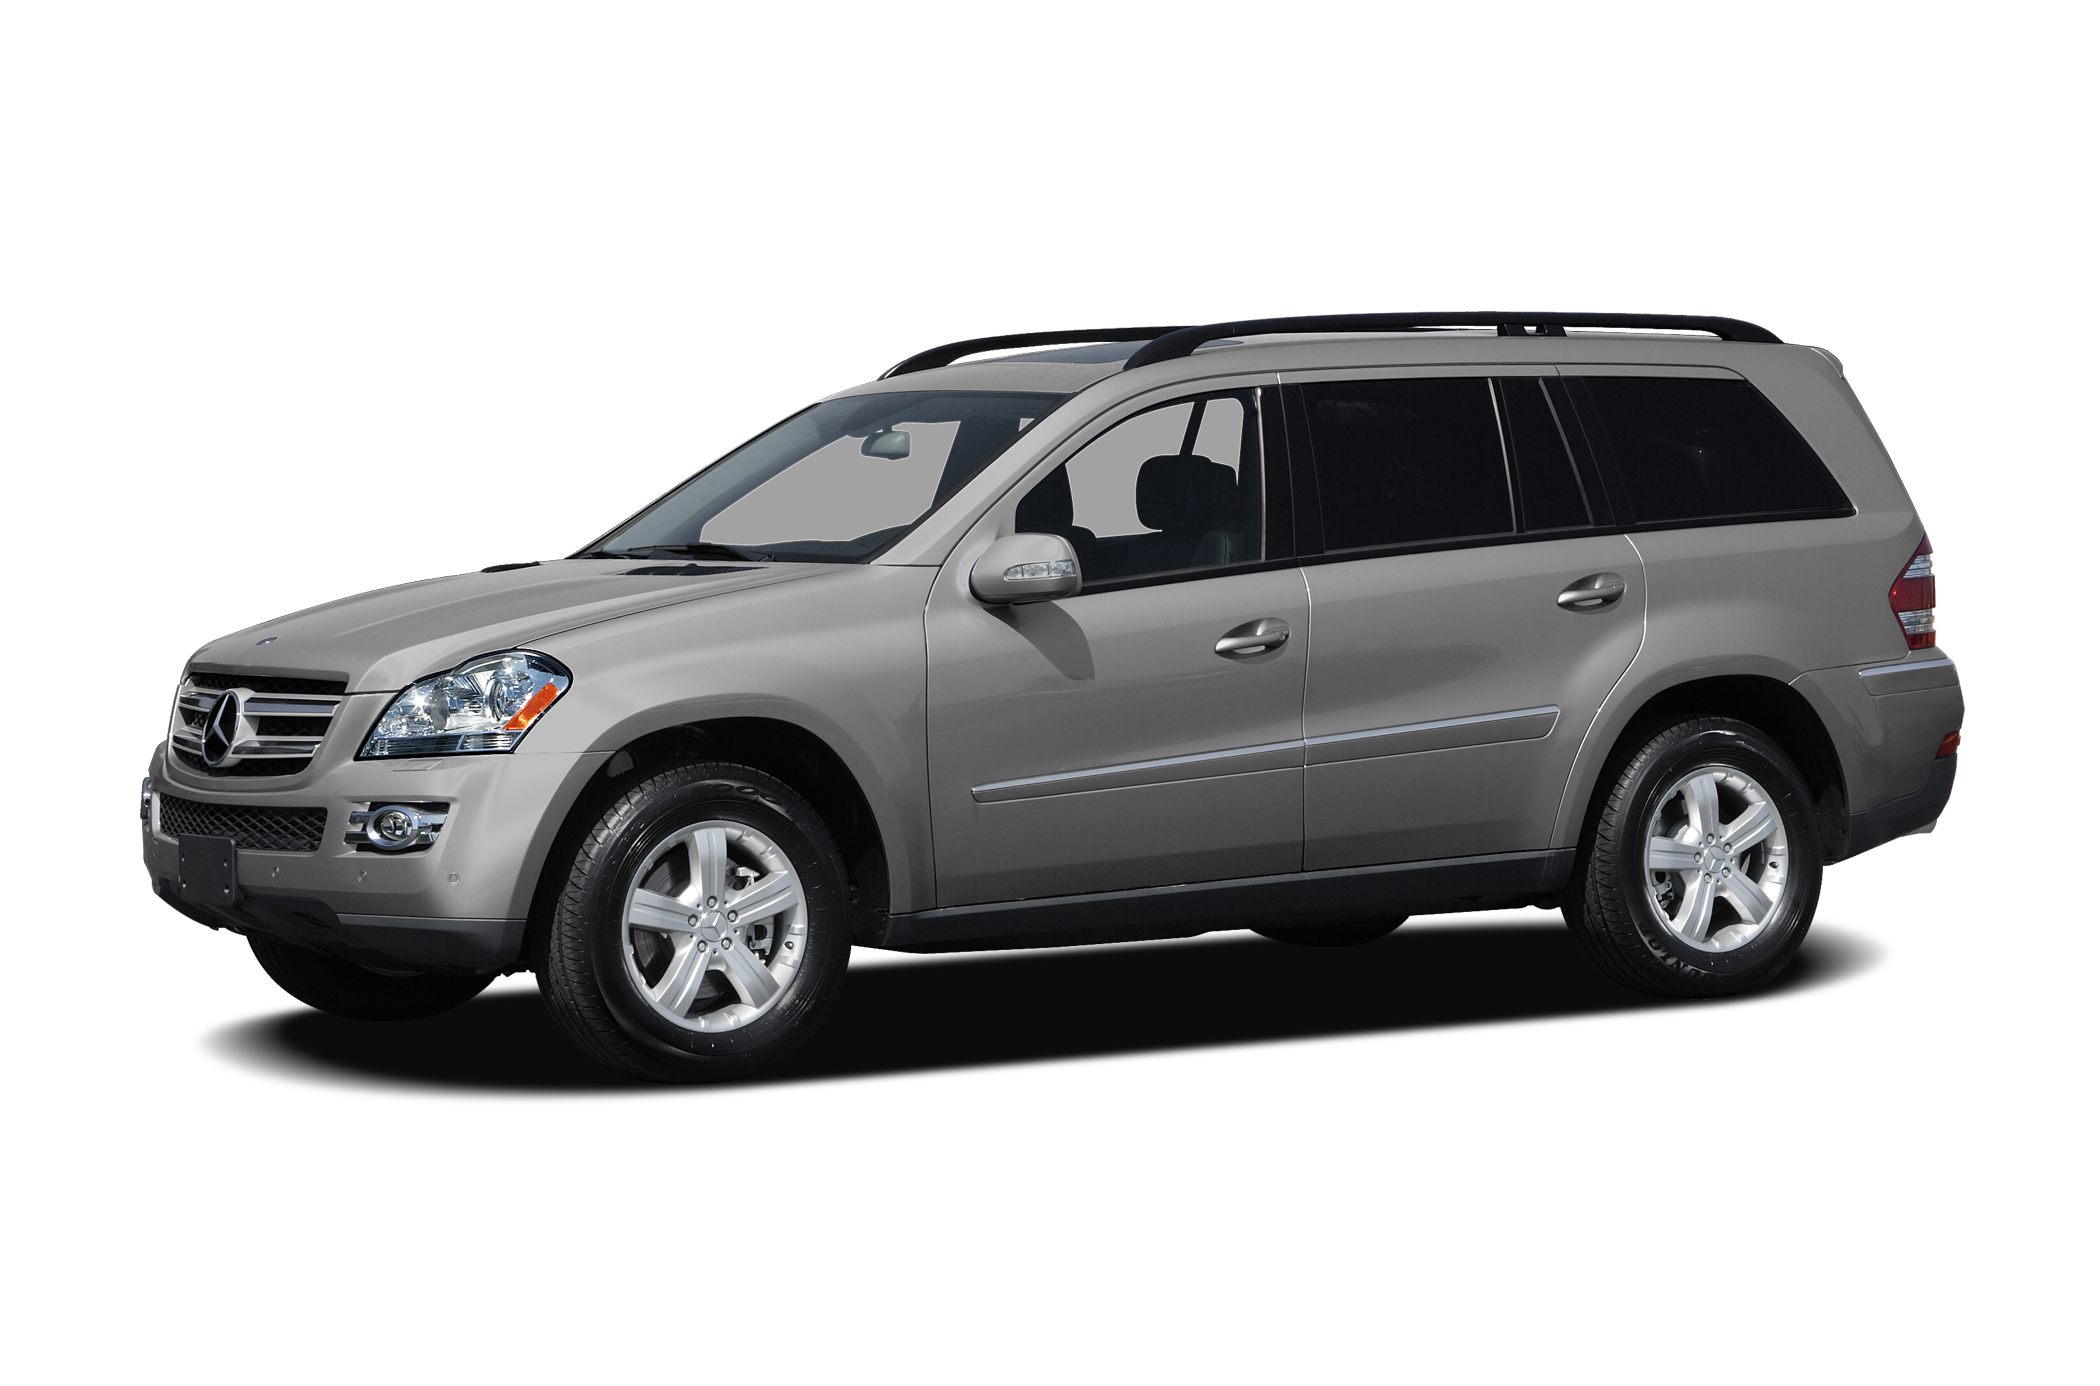 2007 Mercedes-Benz GL-Class GL450 4MATIC SUV for sale in Puyallup for $16,999 with 100,075 miles